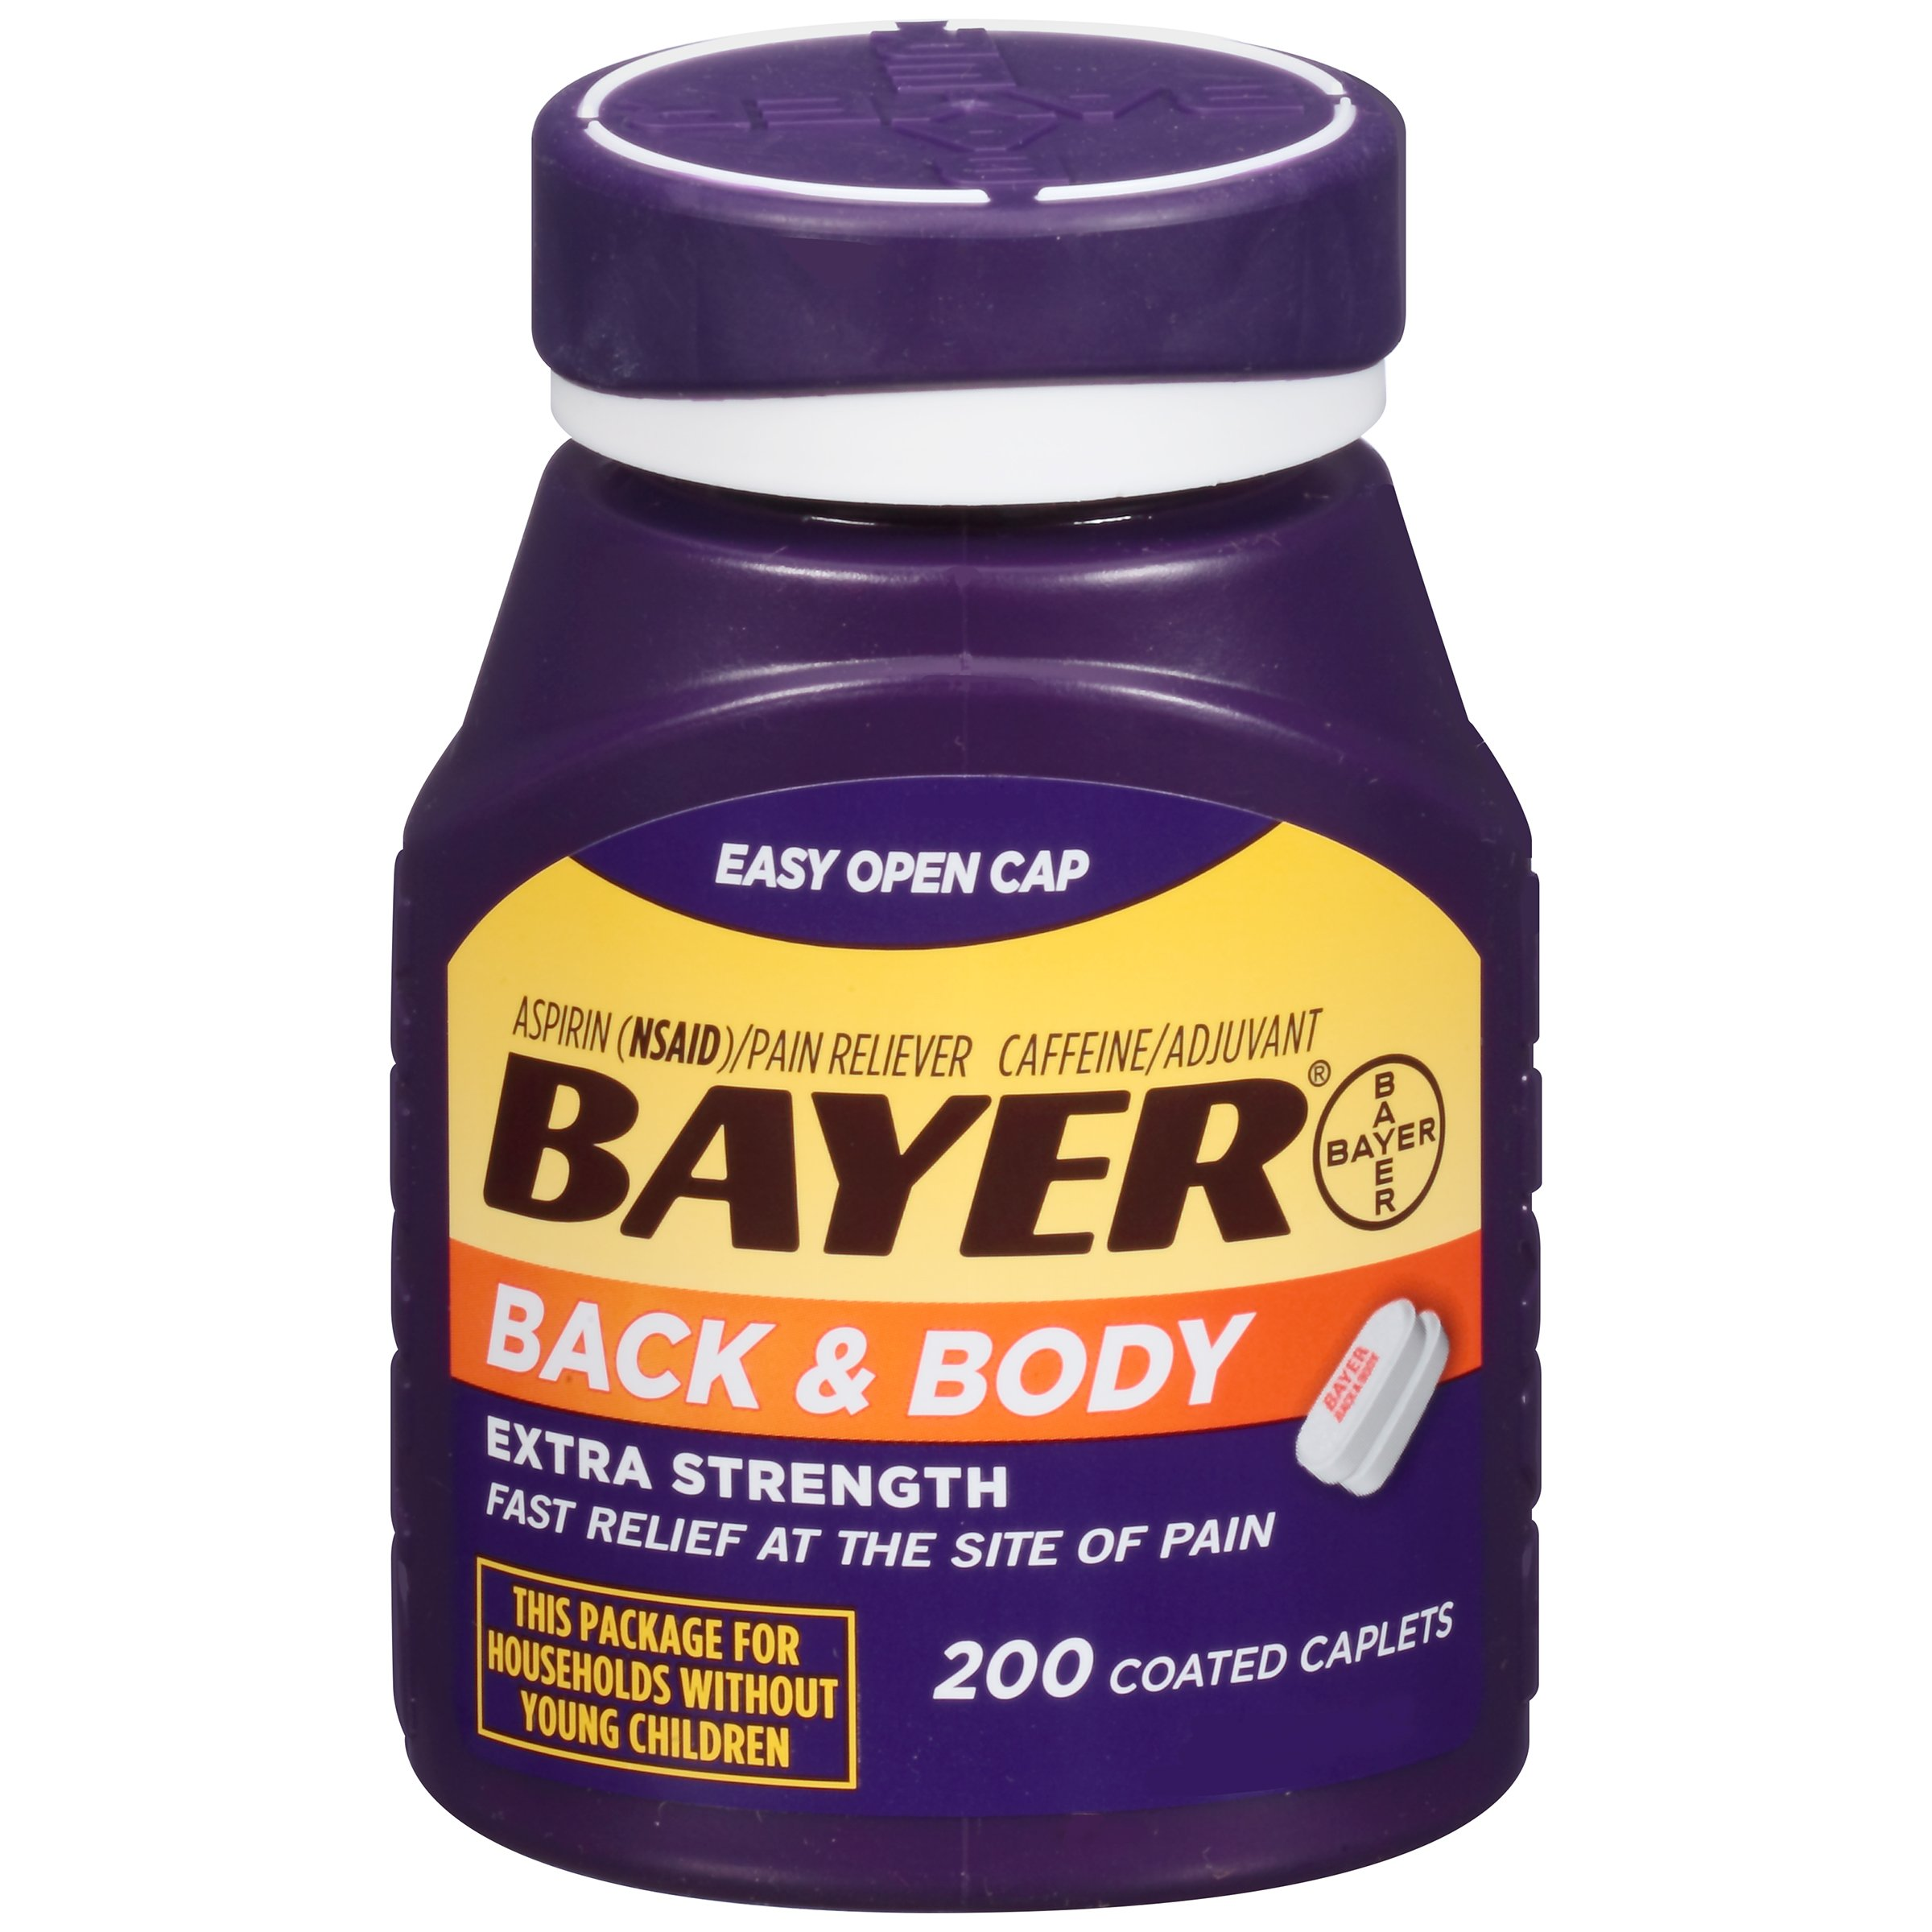 Amazon genuine bayer aspirin 325mg tablets 100 count health bayer aspirin back body 500 mg coated tablets 200 count buycottarizona Image collections